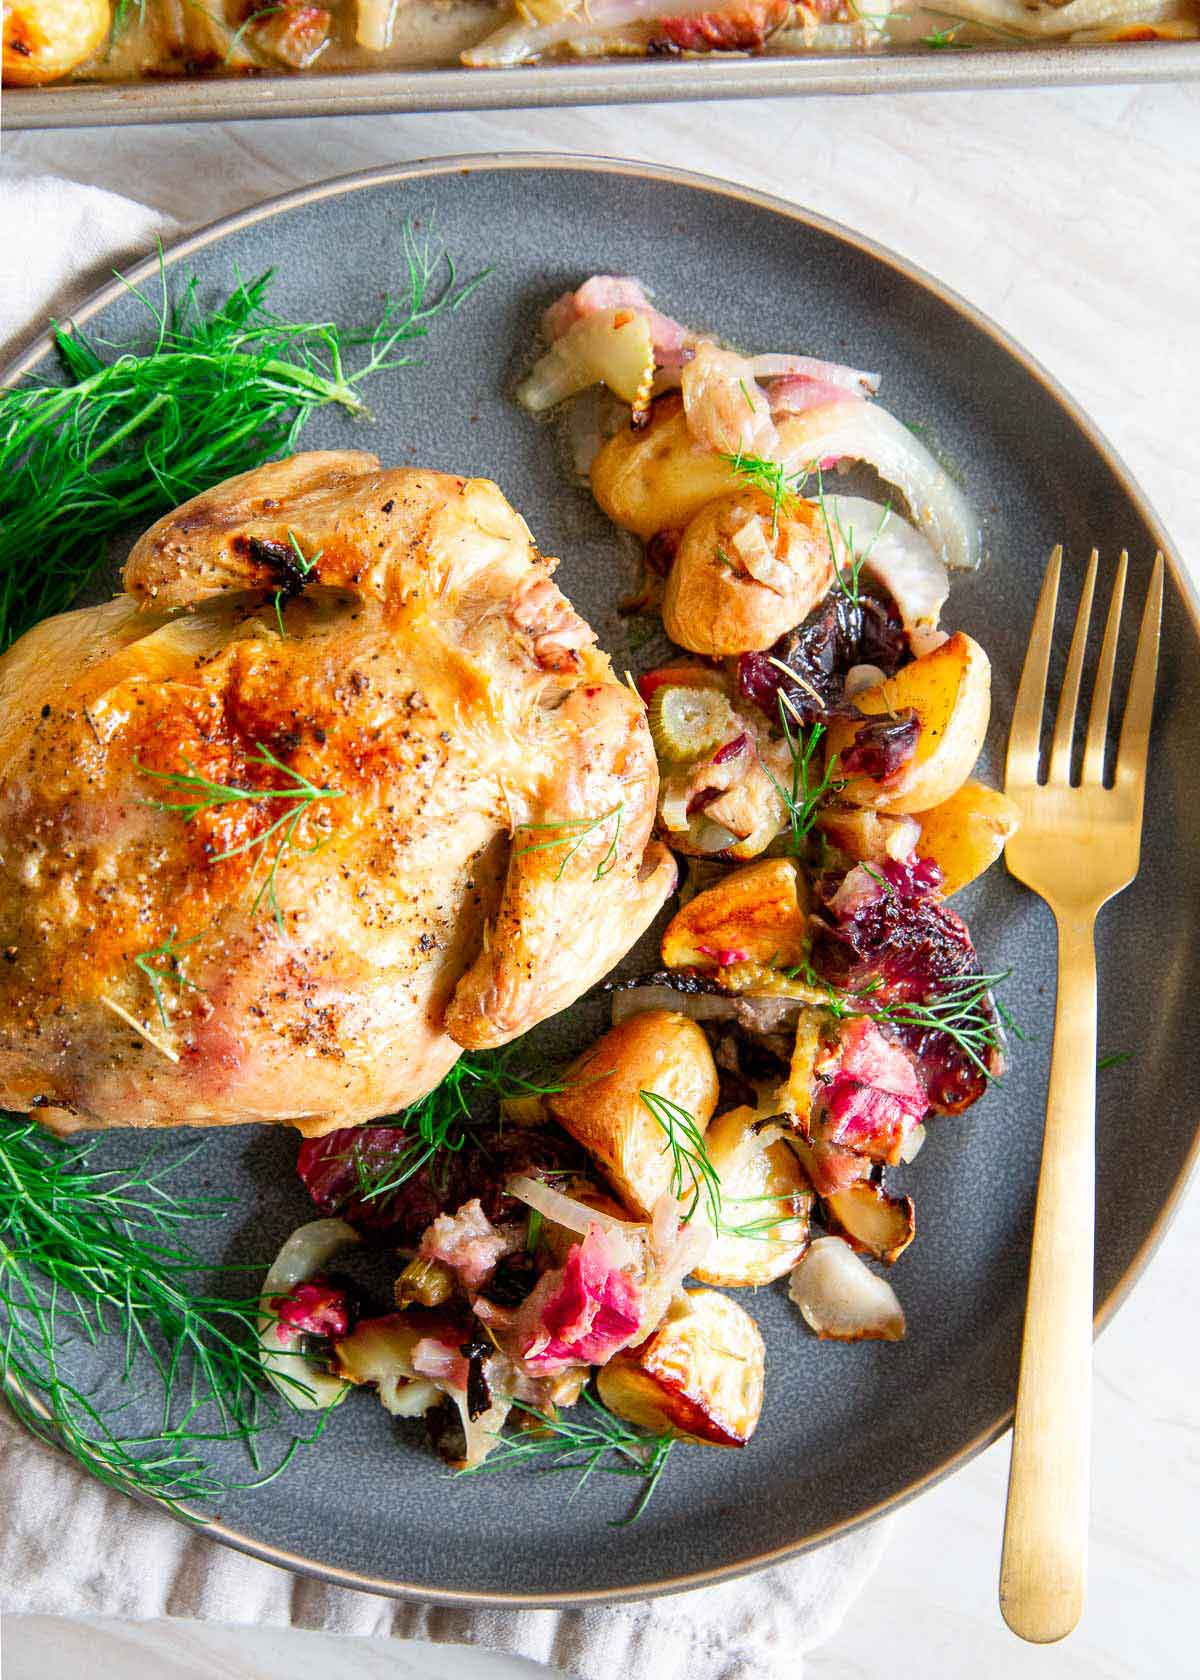 Cornish Game Hens are the perfect dinner option for a special meal when you want an impressive meal that's easy to throw together.